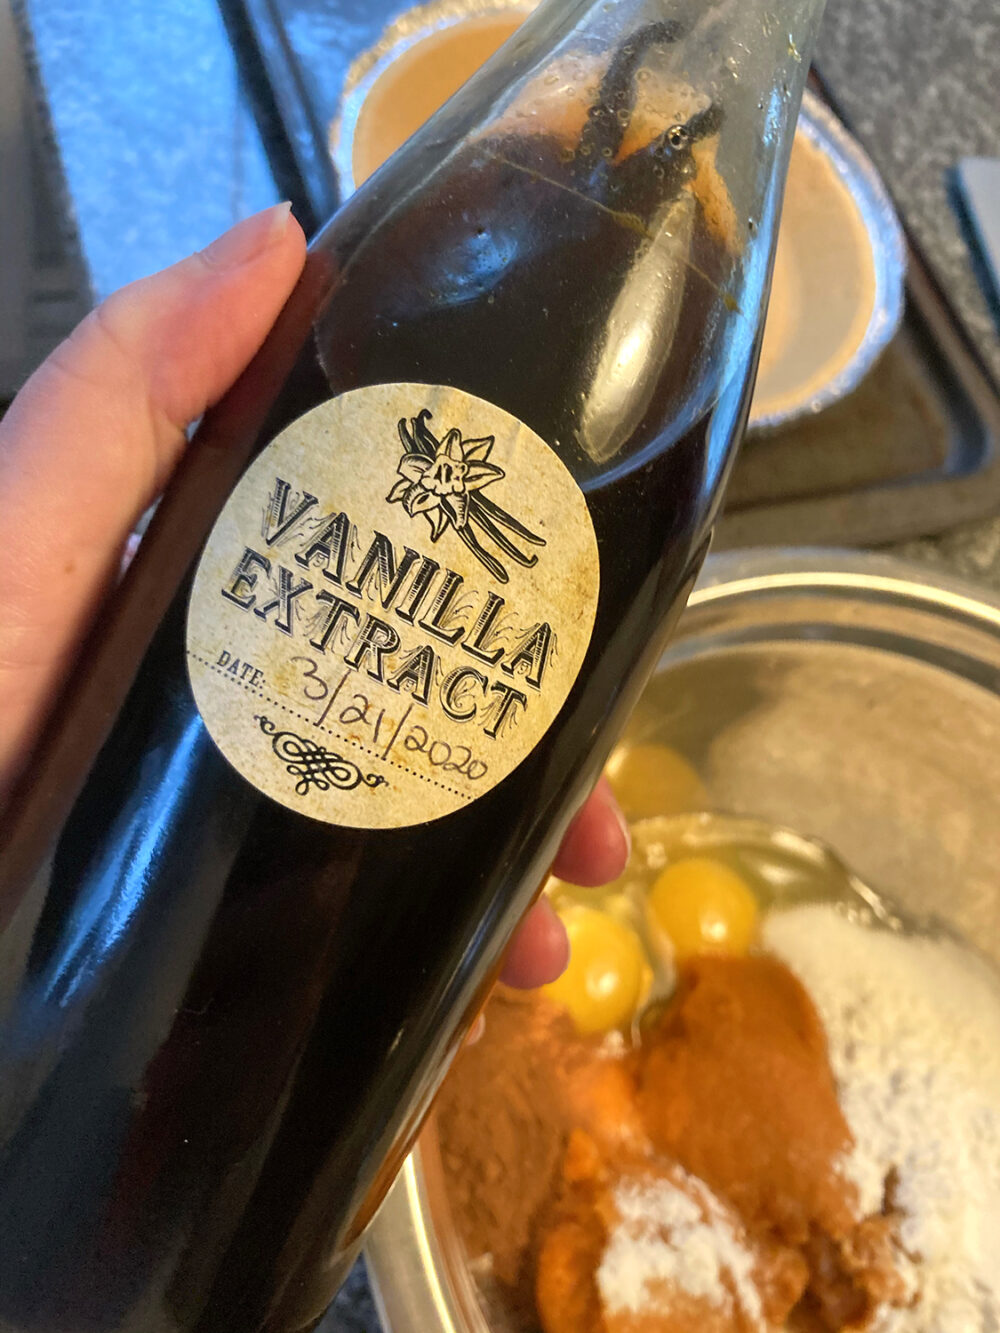 A bottle of homemade vanilla extract with vodka is held in a hand over a counter with a pie plate and batter. The extract is a dark, rich brown and the vanilla beans can be seen poking out of the liquid.